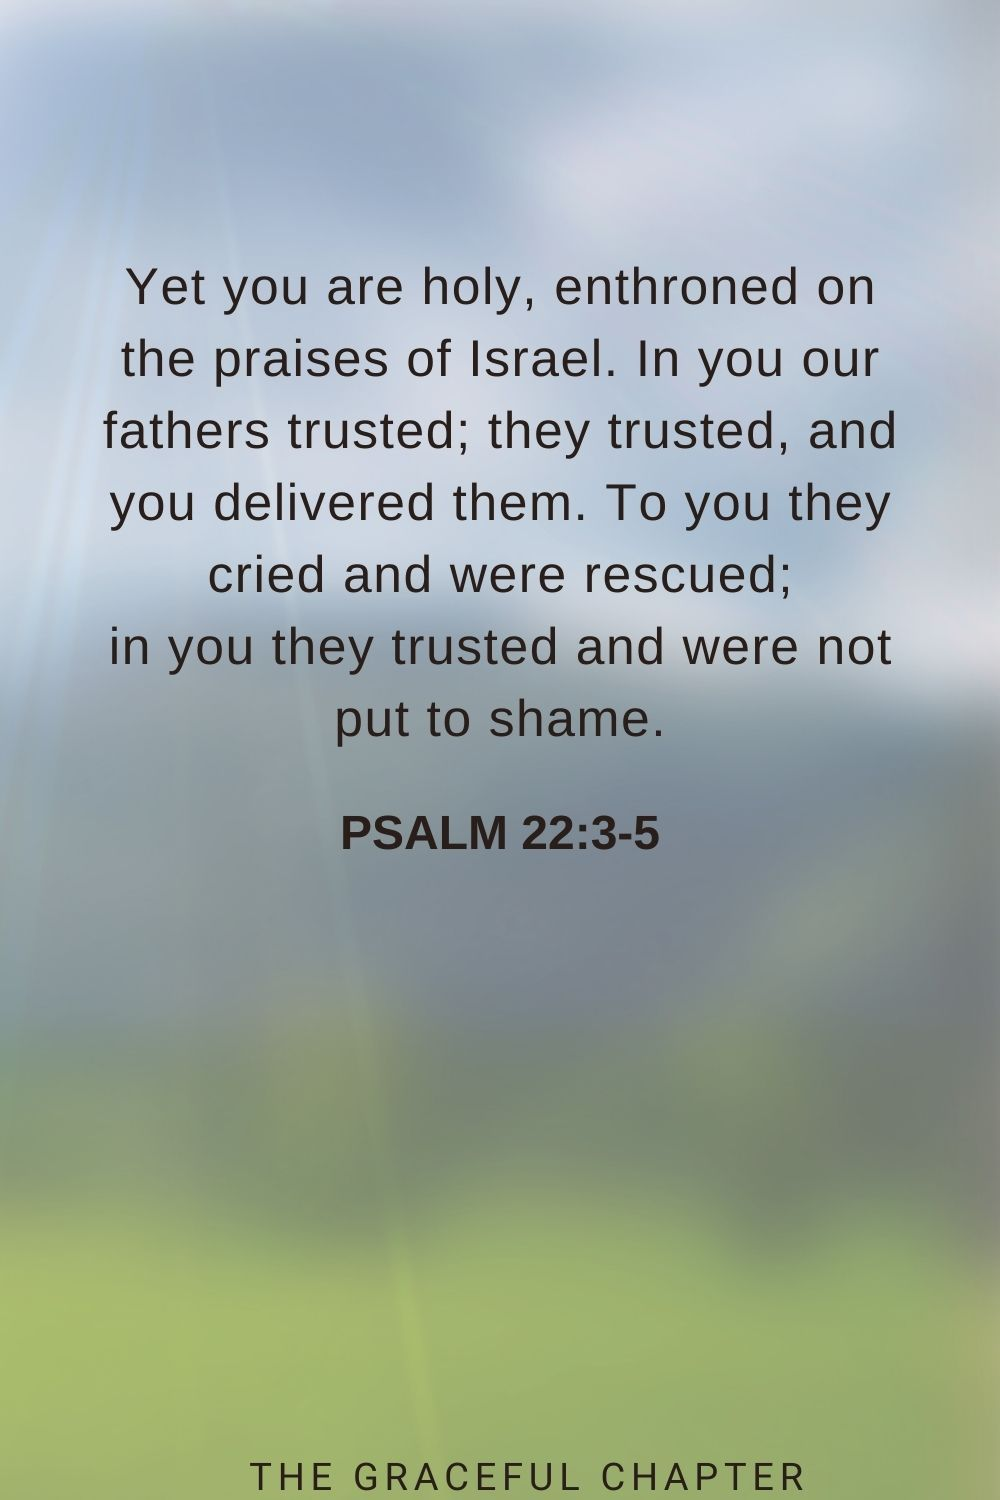 Yet you are holy, enthroned on the praises of Israel. In you our fathers trusted; they trusted, and you delivered them. To you they cried and were rescued; in you they trusted and were not put to shame. Psalm 22:3-5